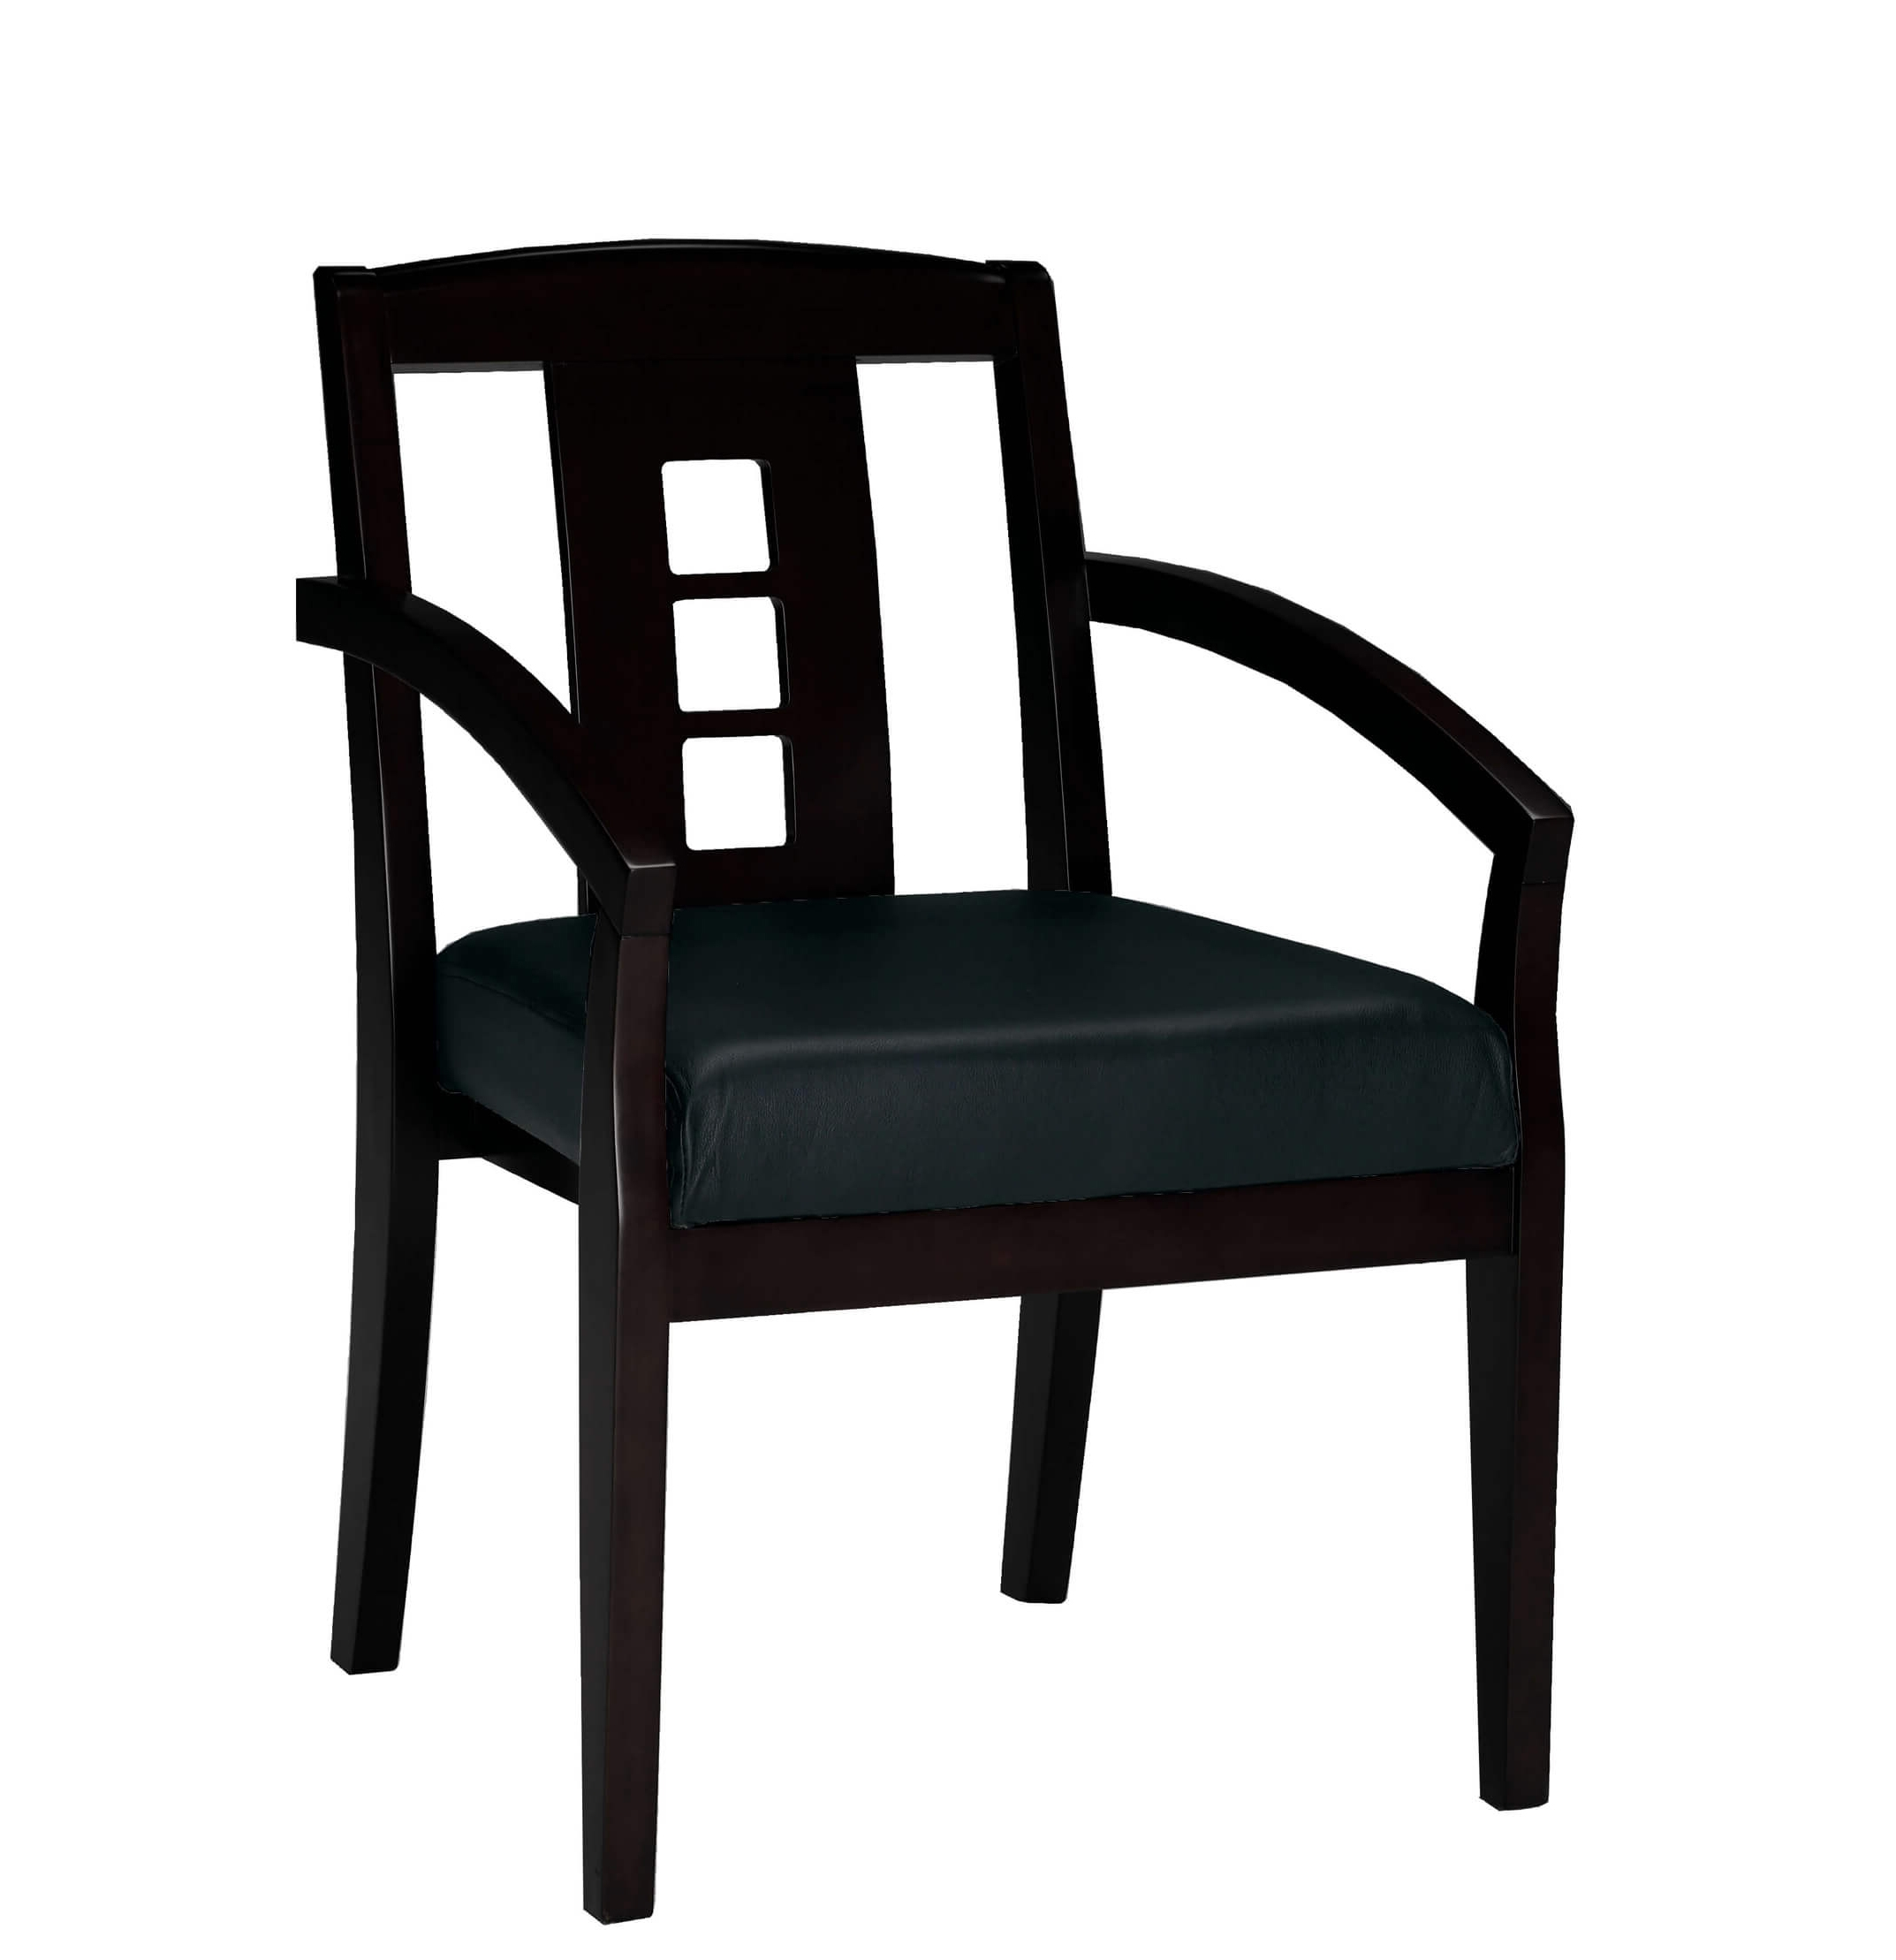 Side chairs with arms CUB VSC2ABESP YAM